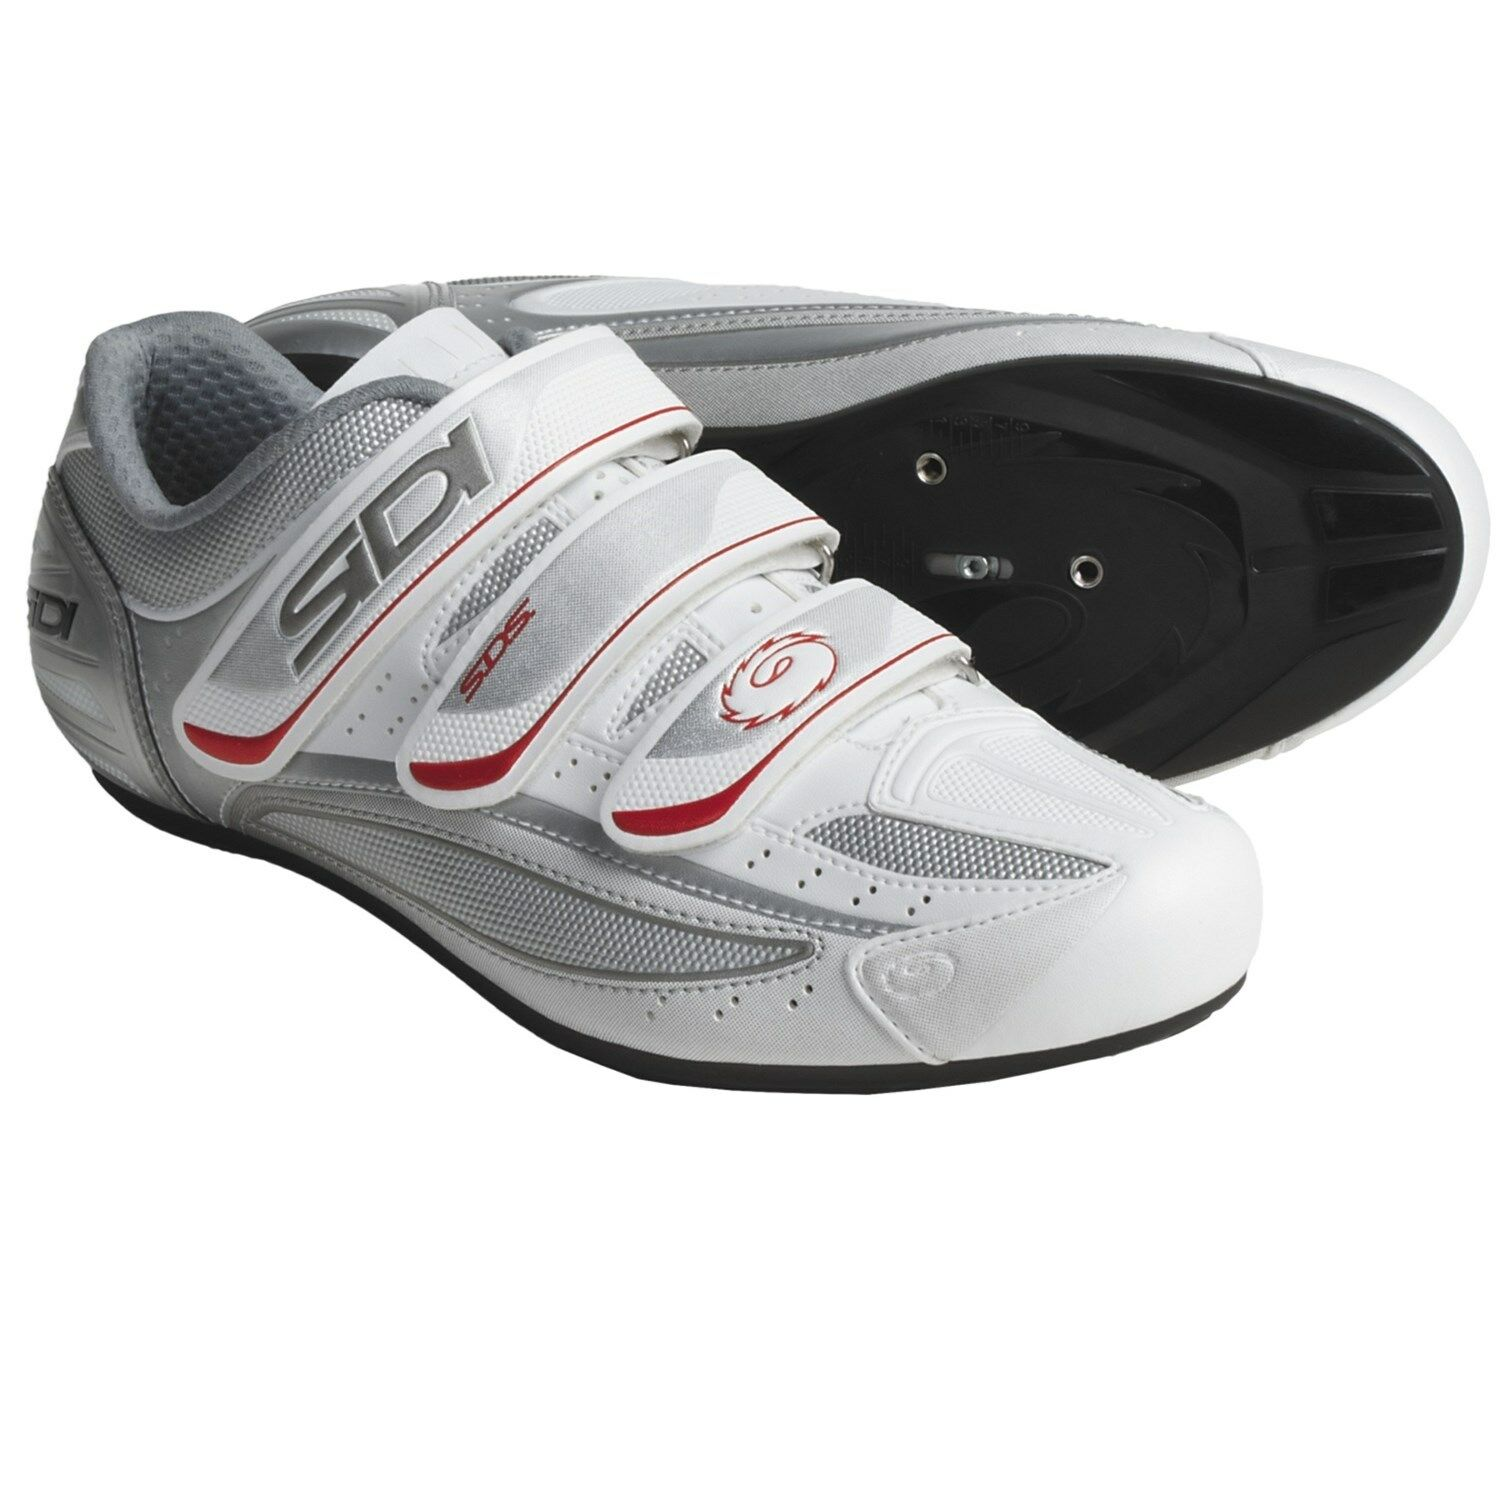 Sidi Nevada shoes SDS Road shoes RRP .99